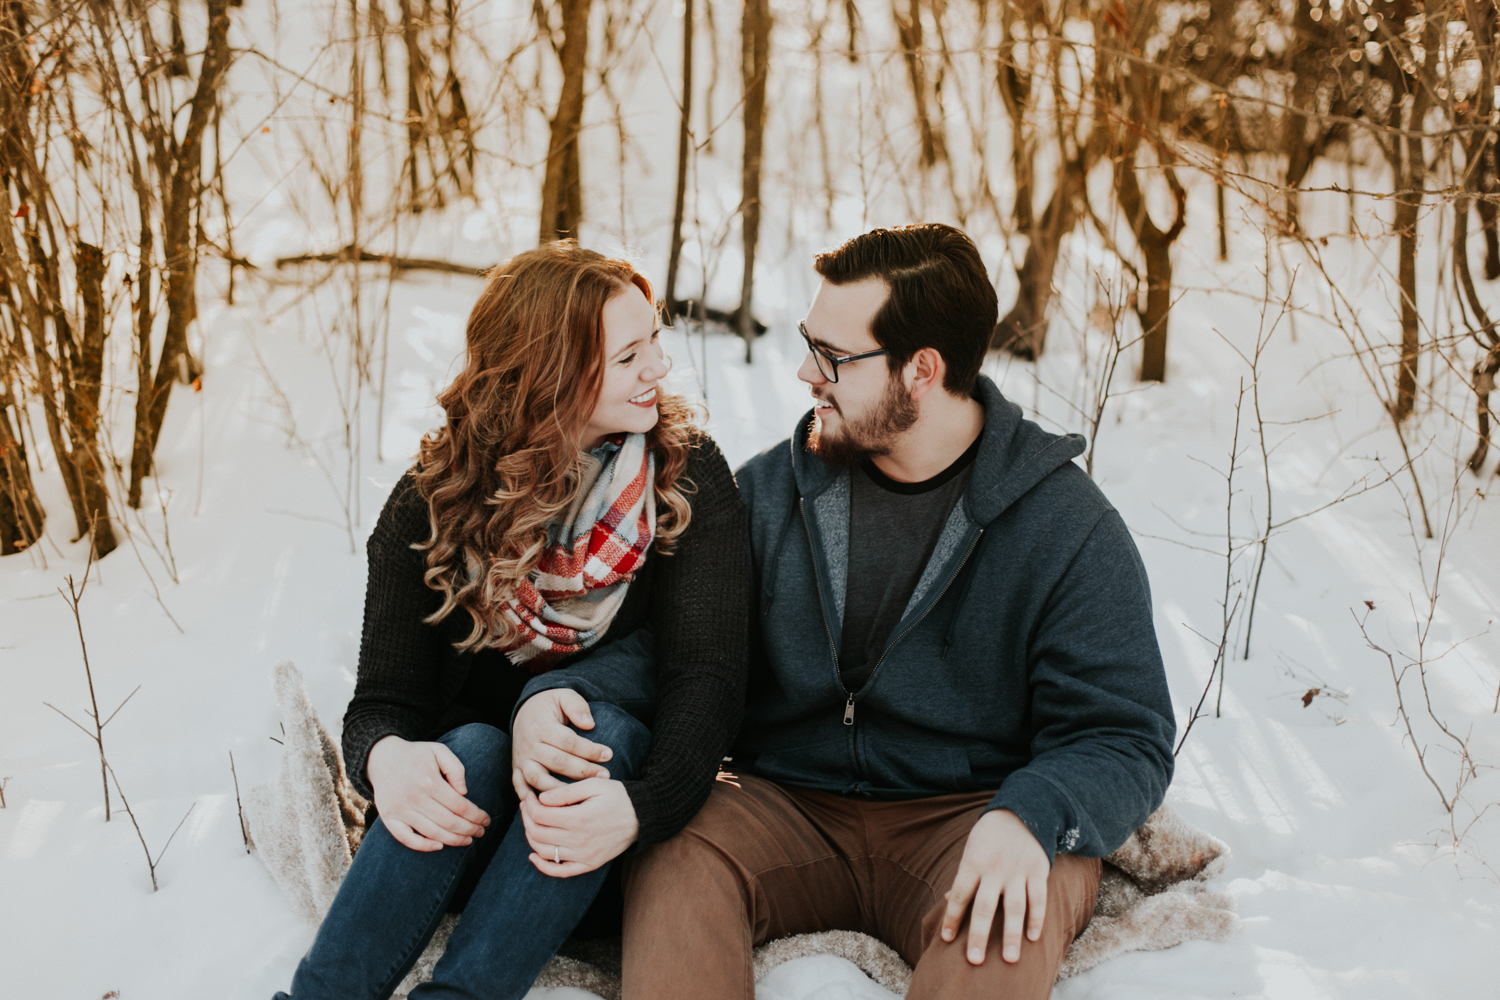 lethbridge-photography-love-and-be-loved-photographer-dan-tynnea-engagement-picture-image-photo-28.jpg